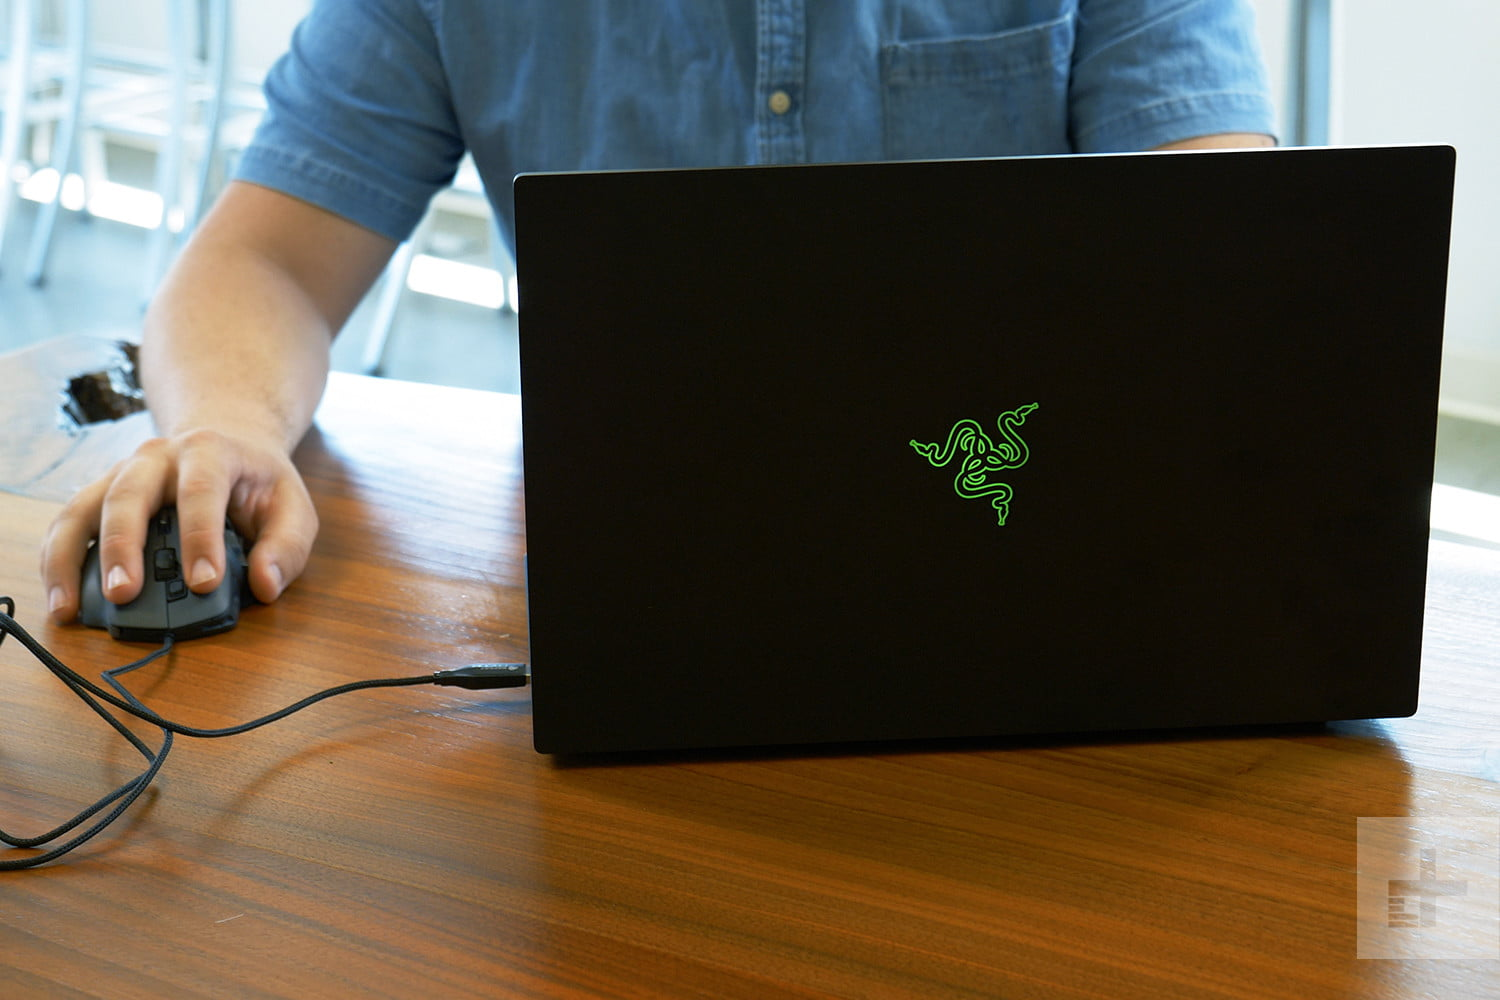 Razer Blade (2018) back lifestyle mouse